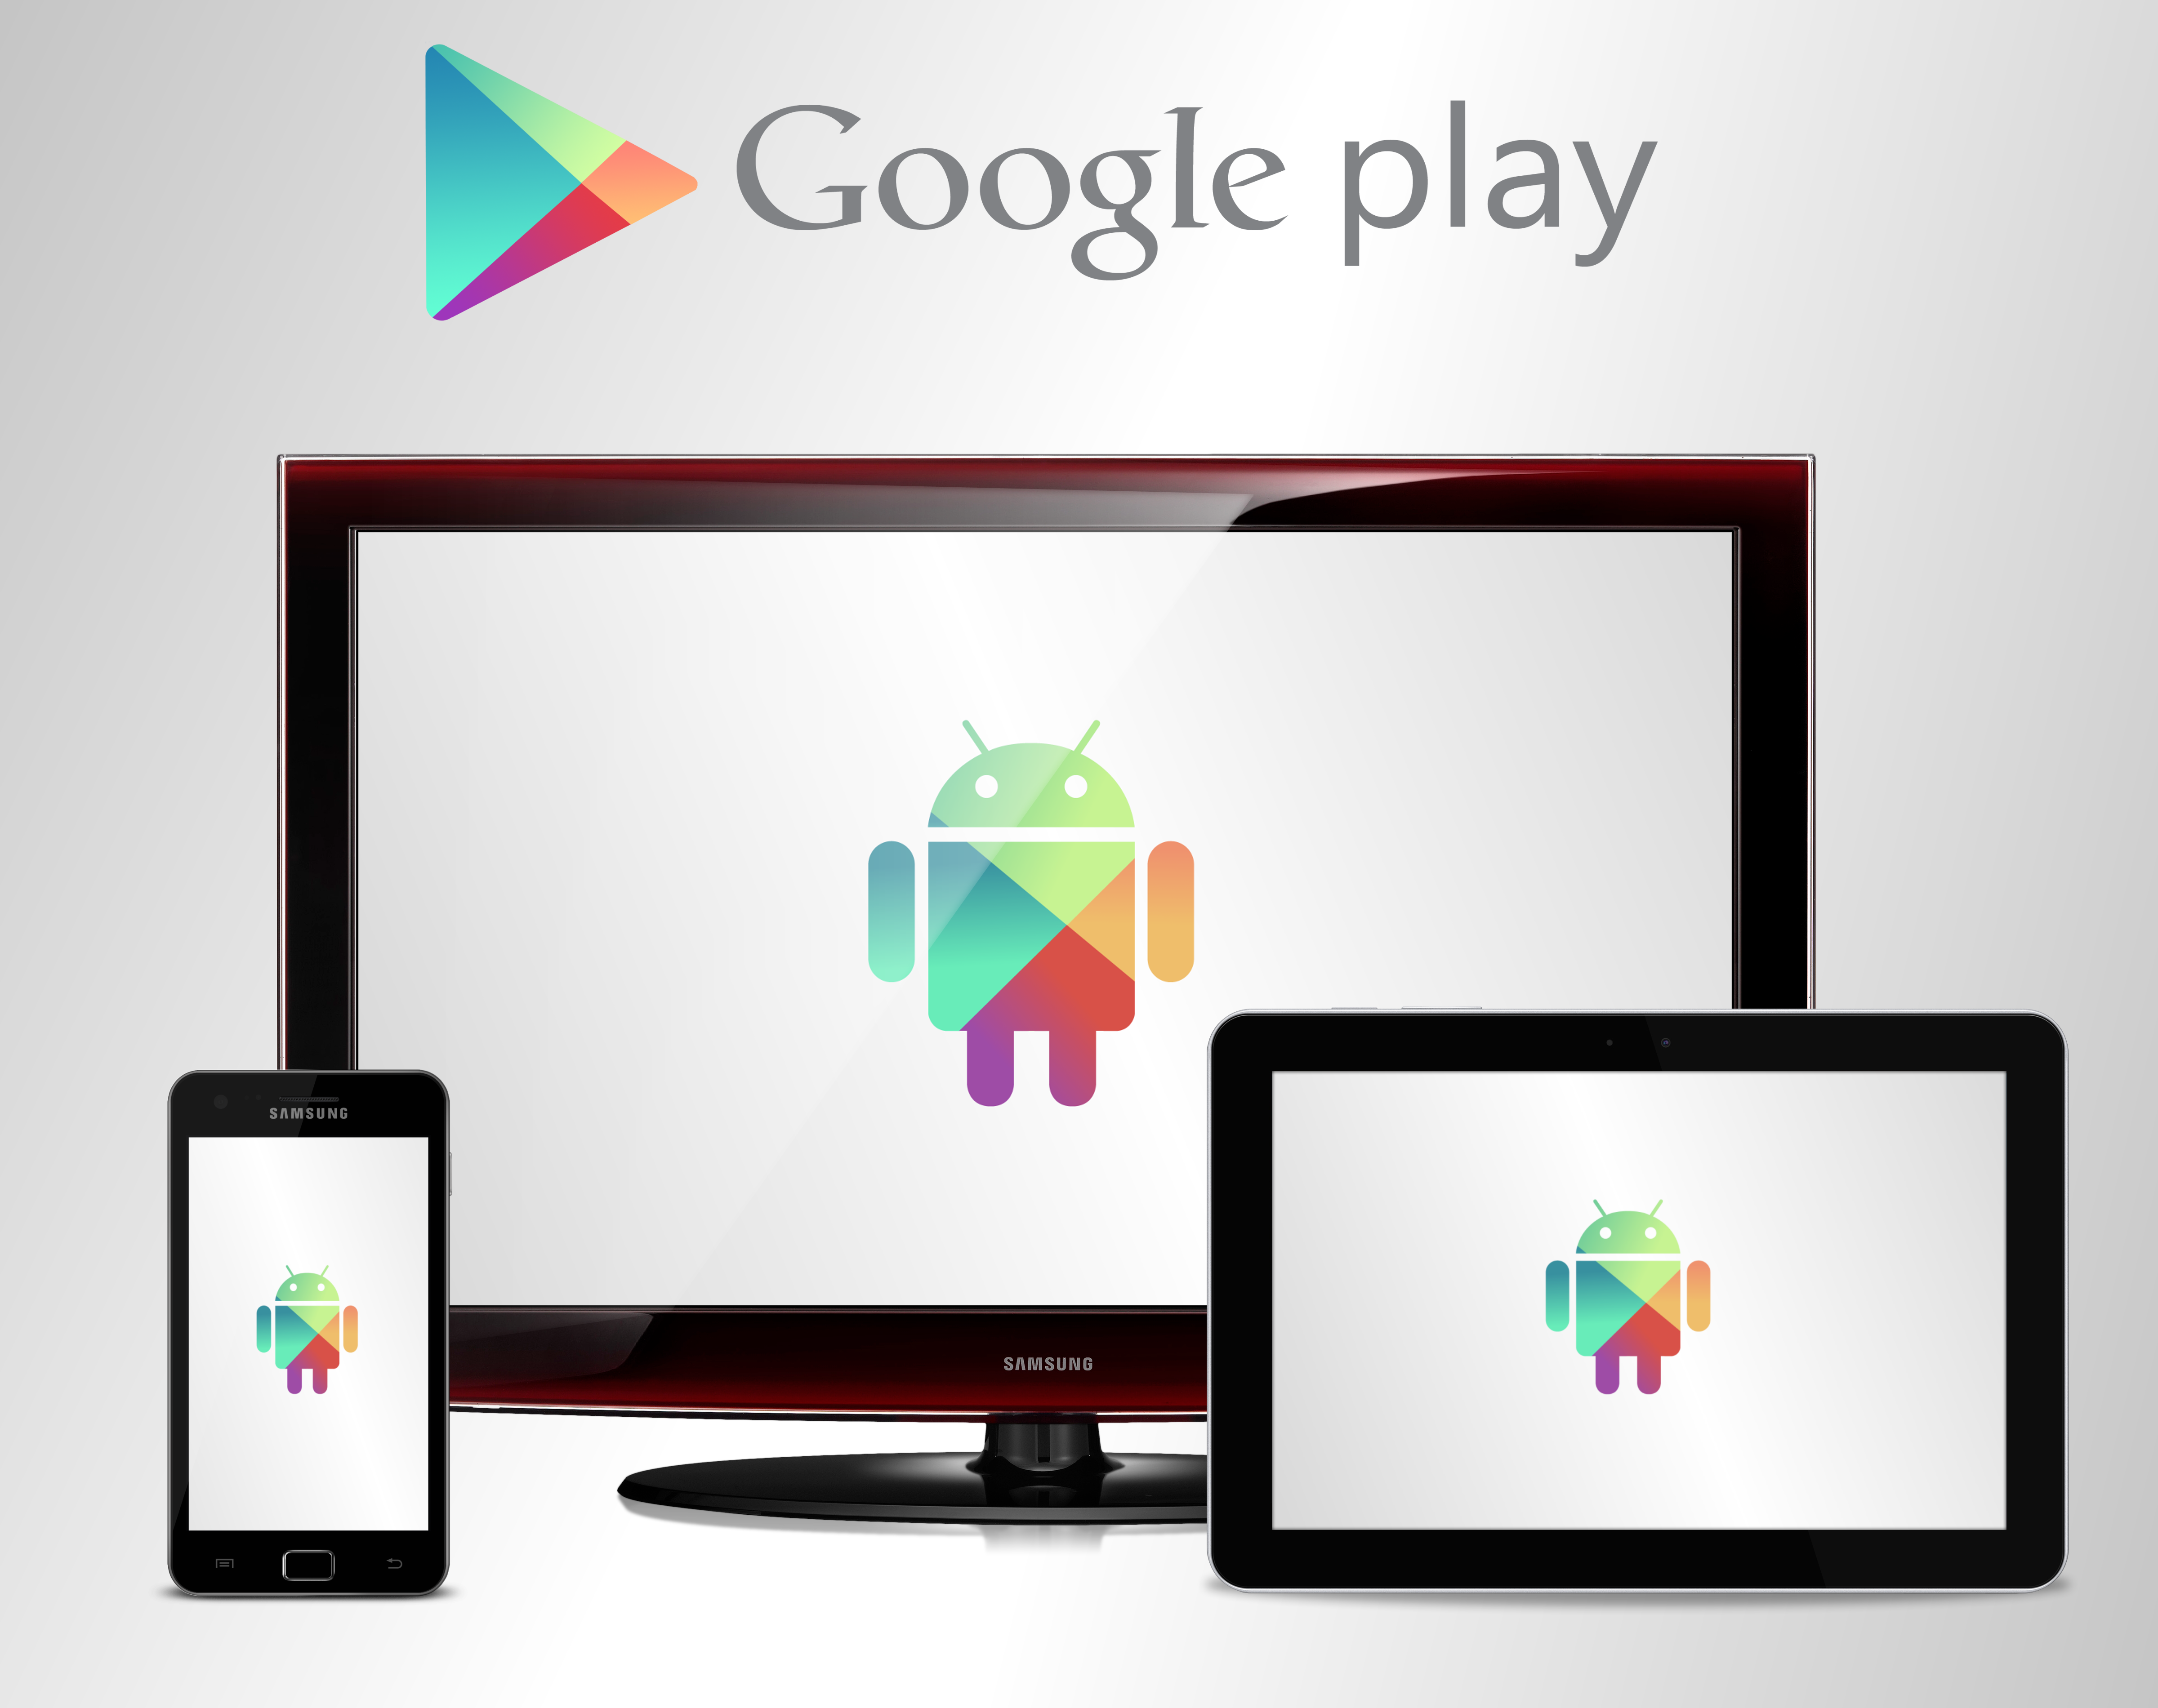 Google Play by SilentWard